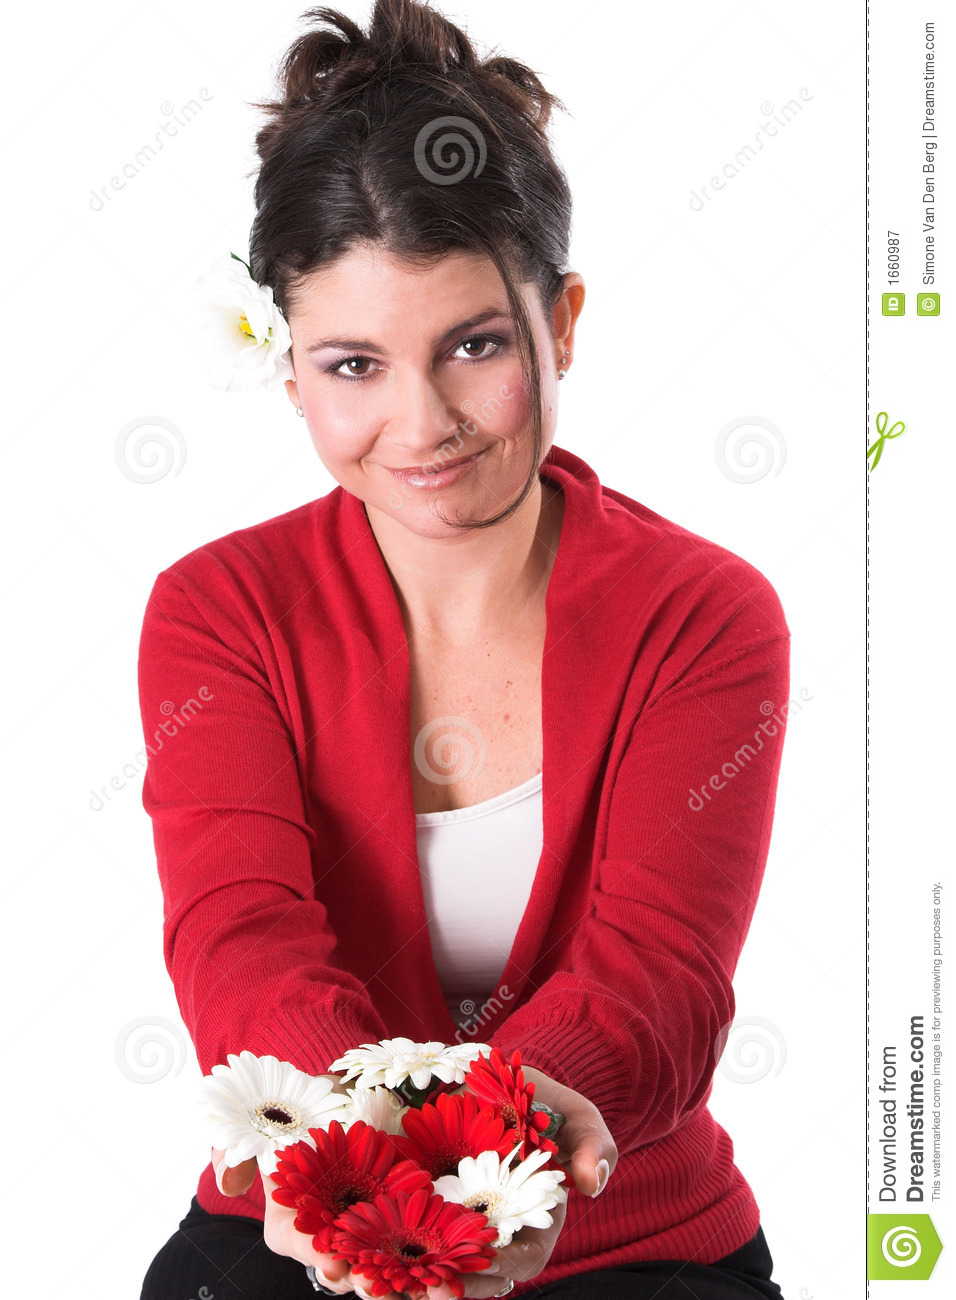 Beautiful Woman Holding Flowers Royalty Free Stock ...